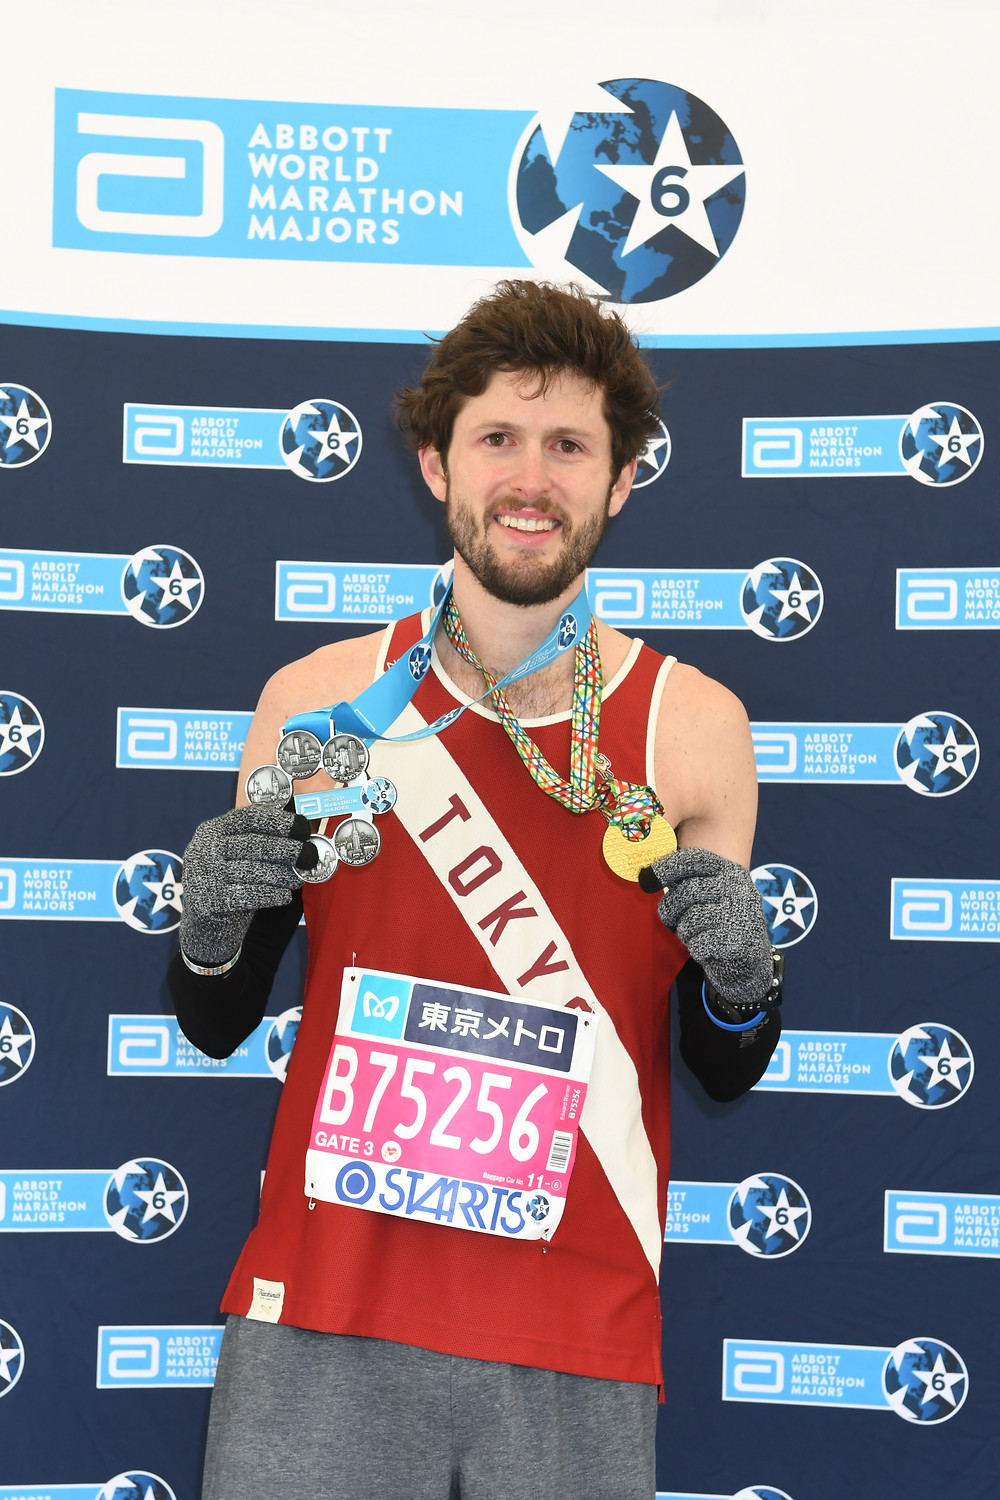 WOODFORD COUNTY NATIVE TED WERNER holds medals for completing the big six major marathons and the Tokyo marathon. (Photo submitted)